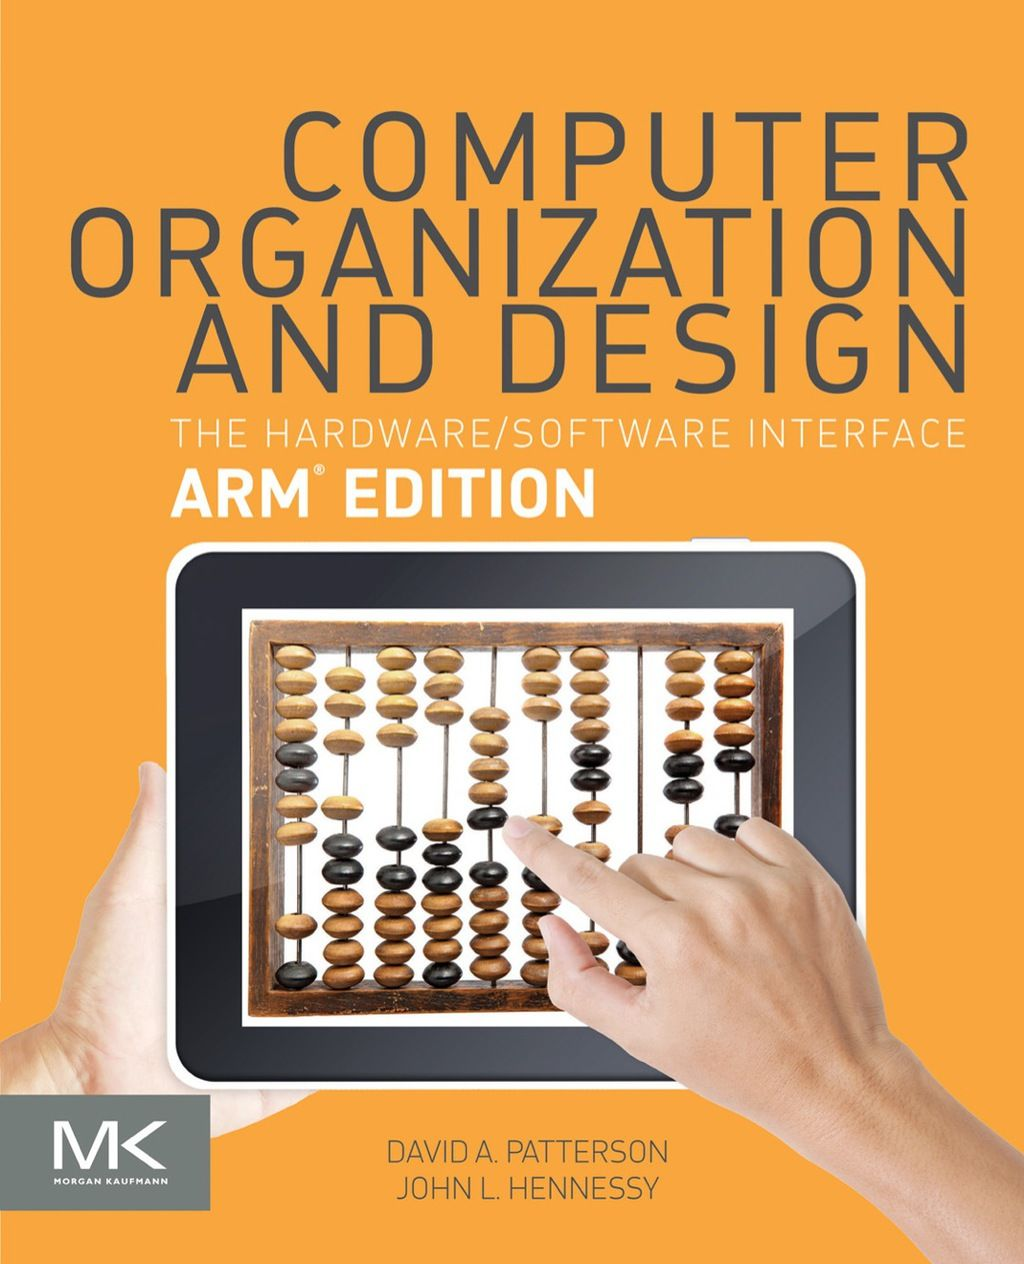 Computer Organization and Design ARM Edition (eBook Rental